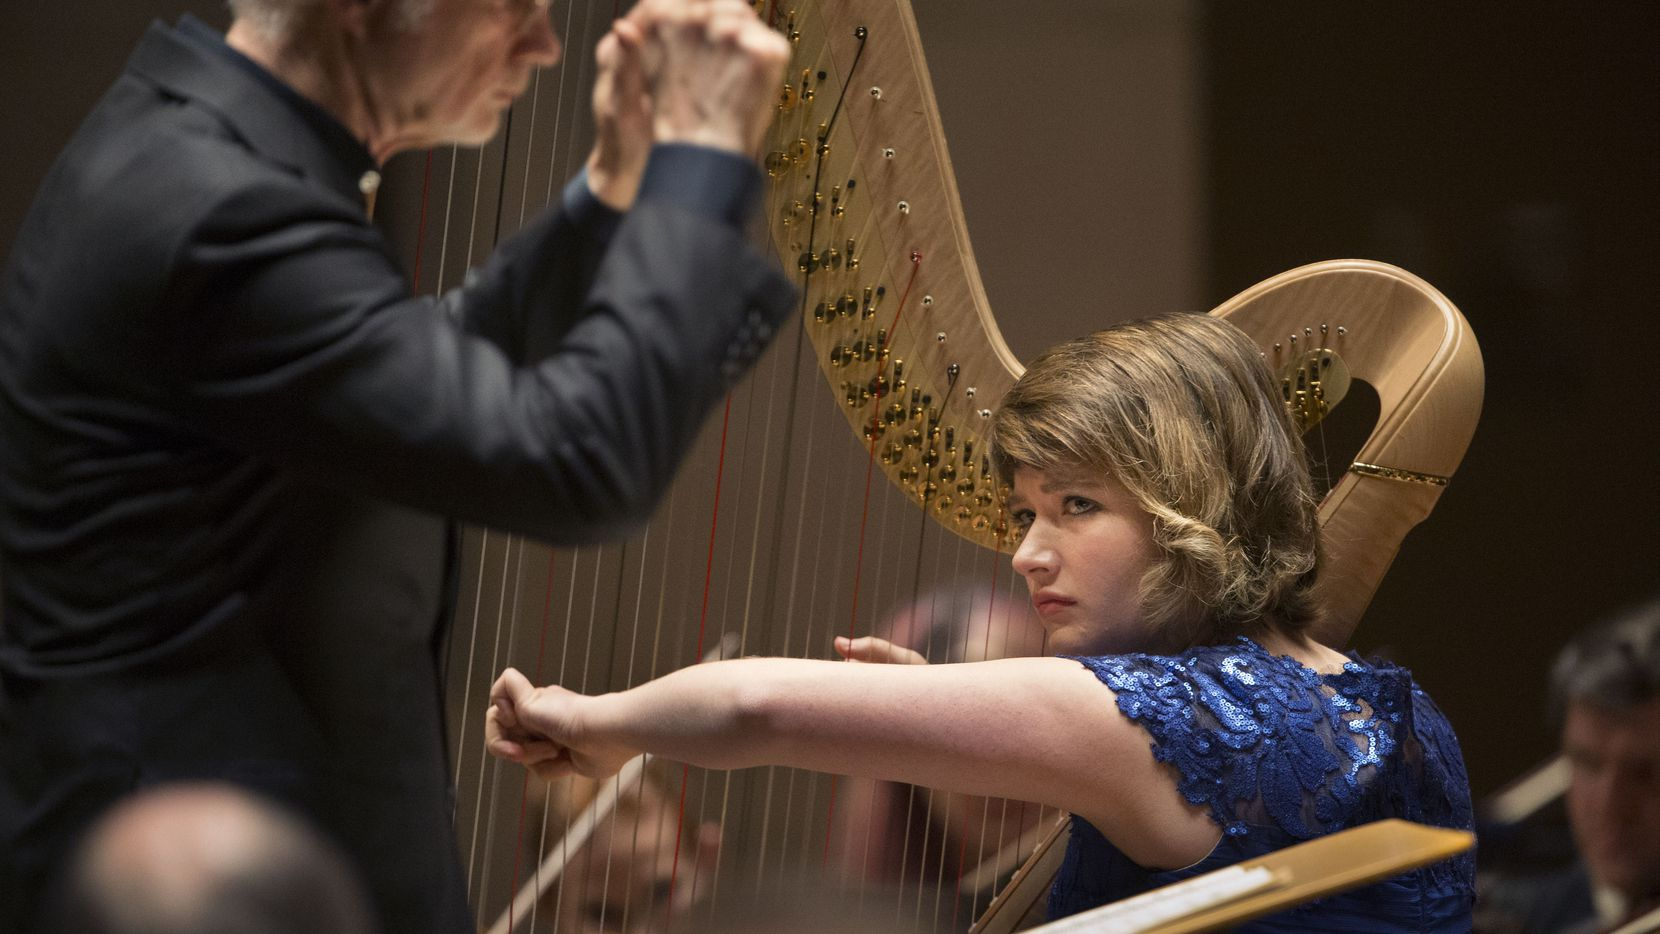 Principal harpist Emily Levin and the Dallas Symphony Orchestra performed under the direction of guest conductor John Adams at the Meyerson Symphony Center in Dallas on Jan. 31, 2019.